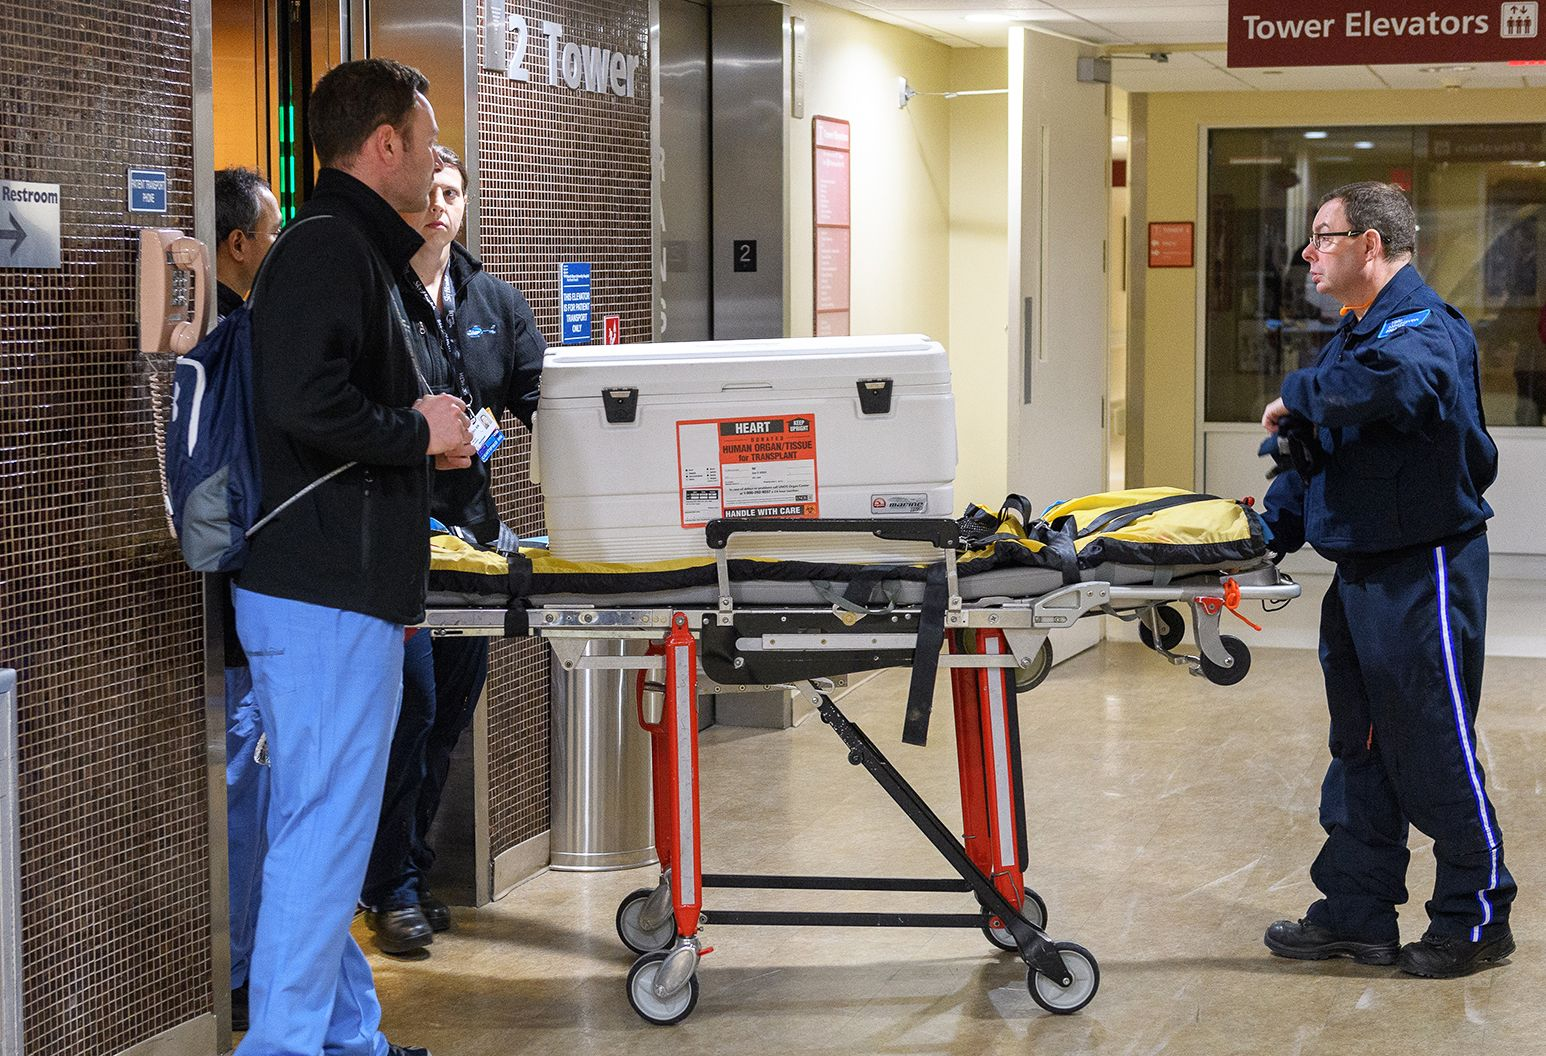 Several people wheel a gurney out of an elevator. On the gurney sits a white cooler with a sticker that says heart on it. They are in the hallway of a hospital.